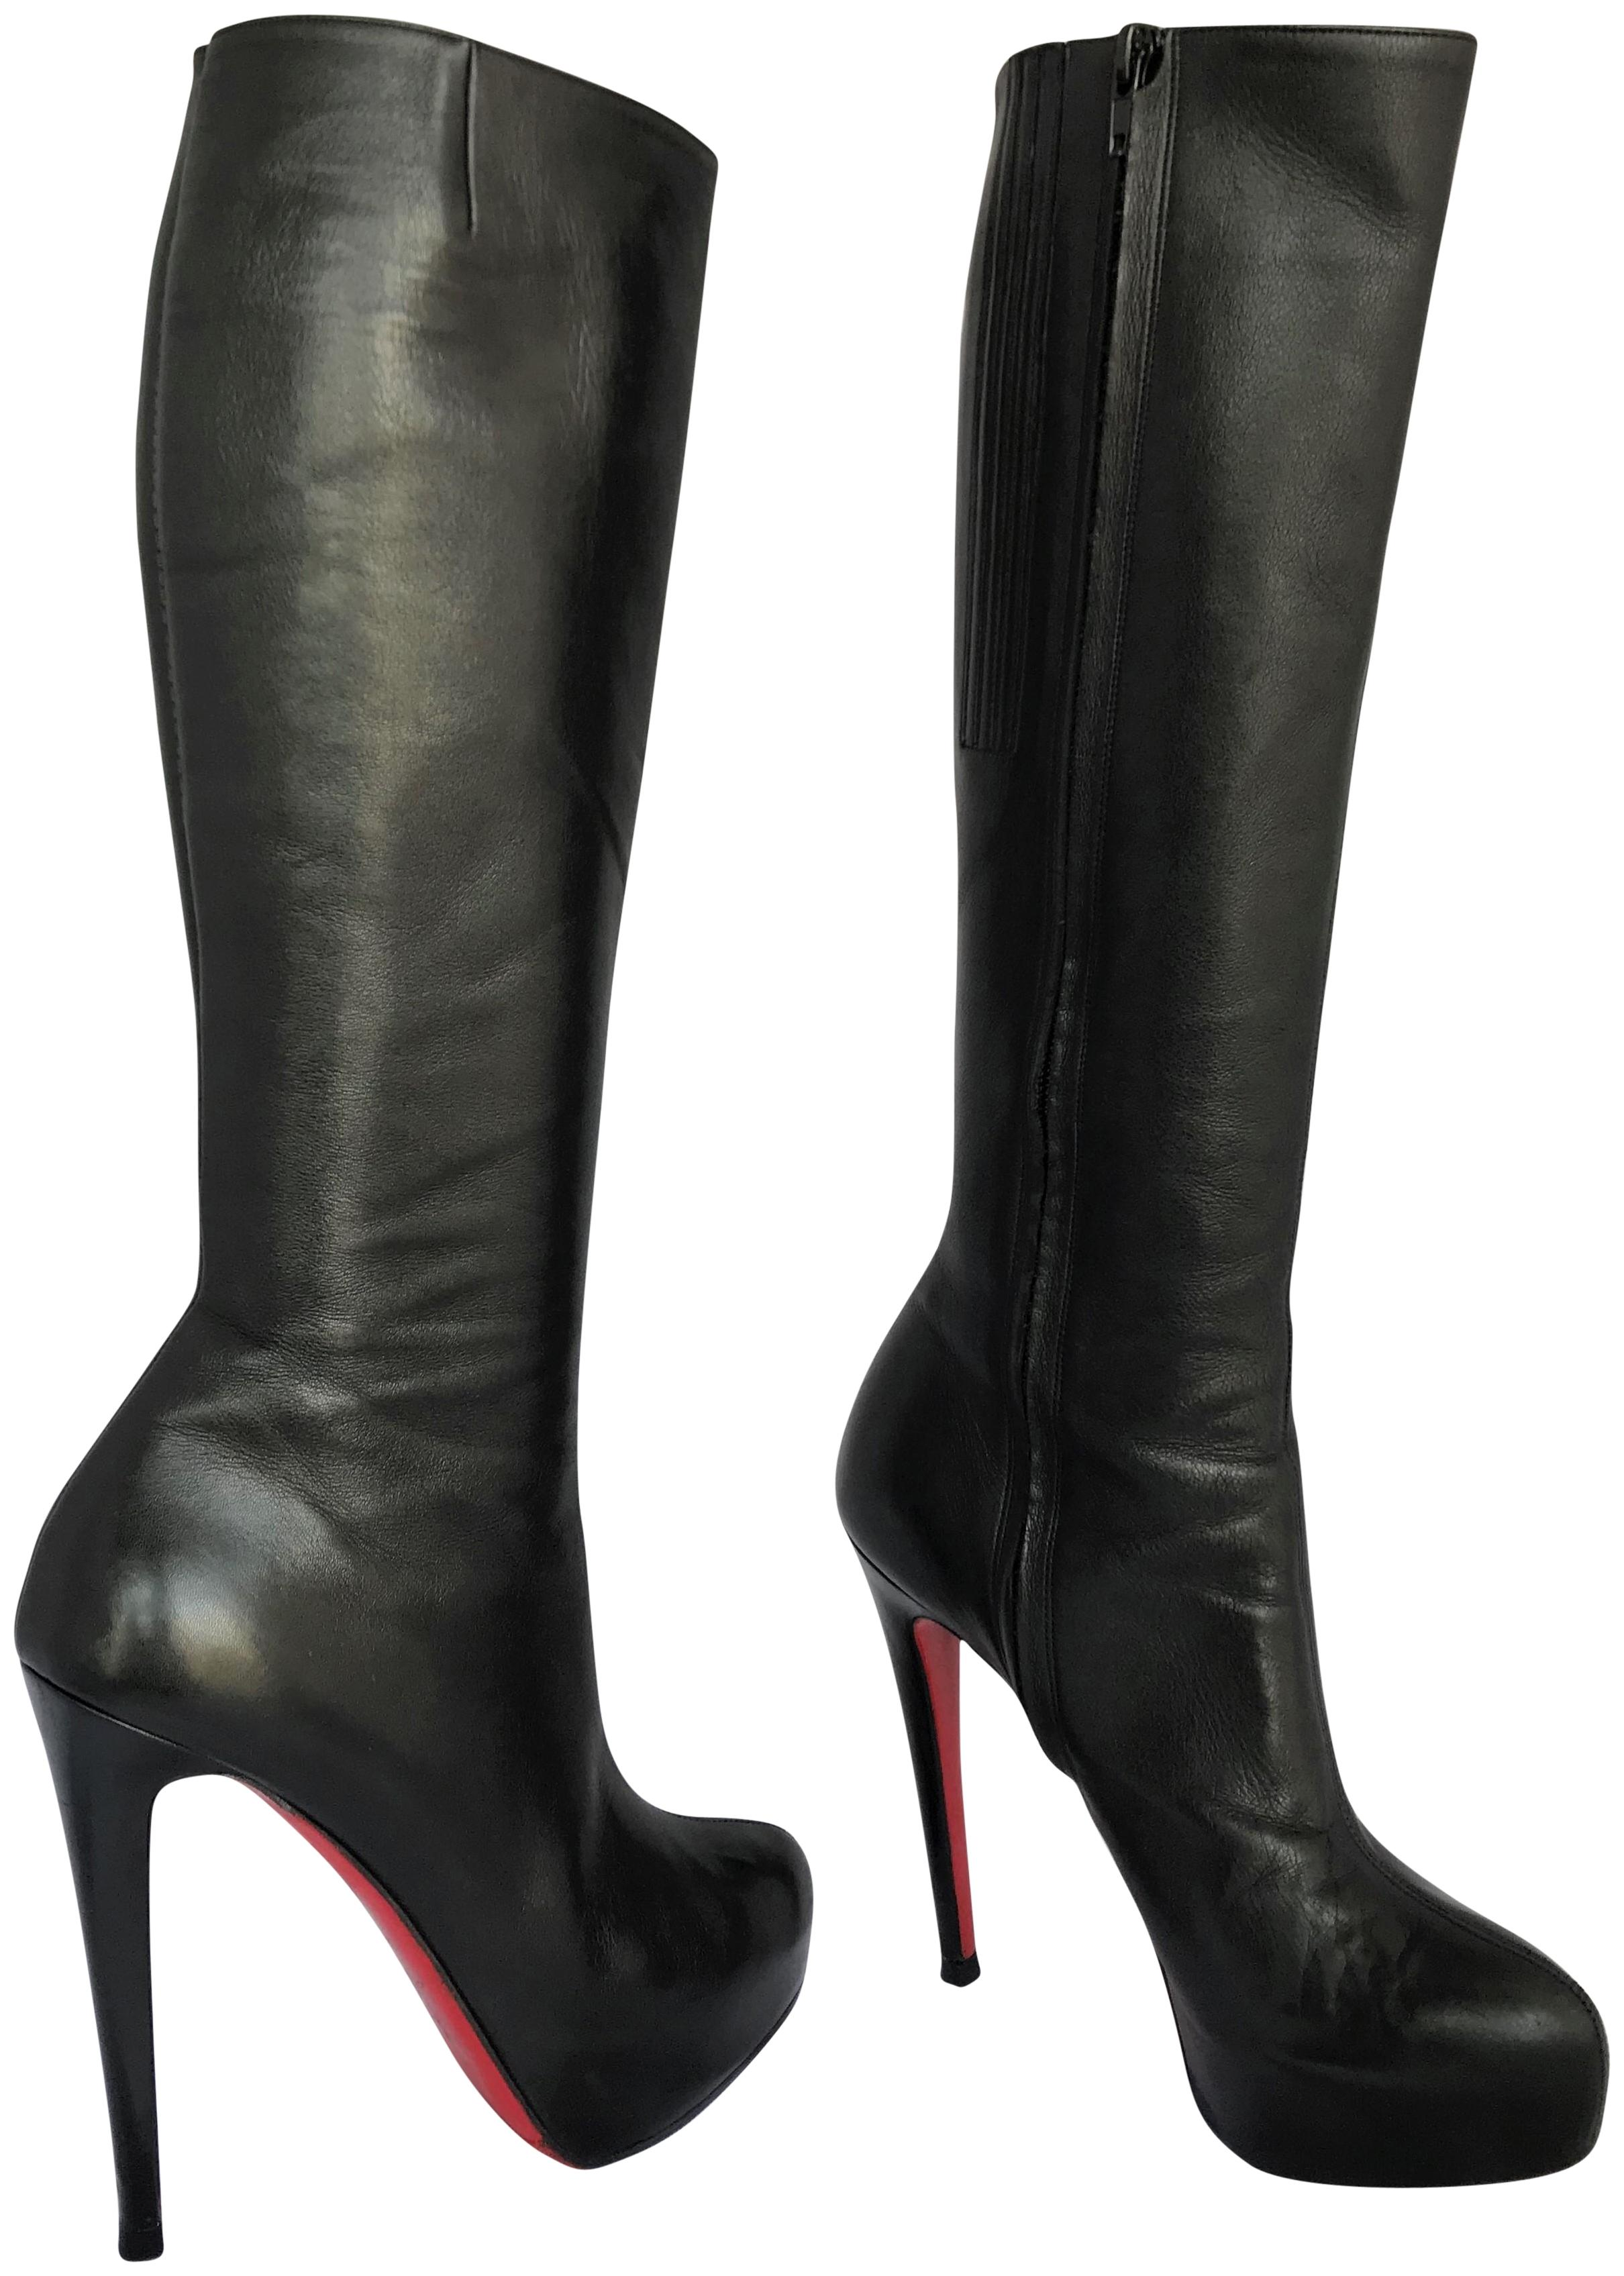 Christian Louboutin Black 38 It Heel Alti Lady Fashion Ankle Red Sole Toe Zip Leather Knee High Boots/Booties Size US 8 Regular (M, B)